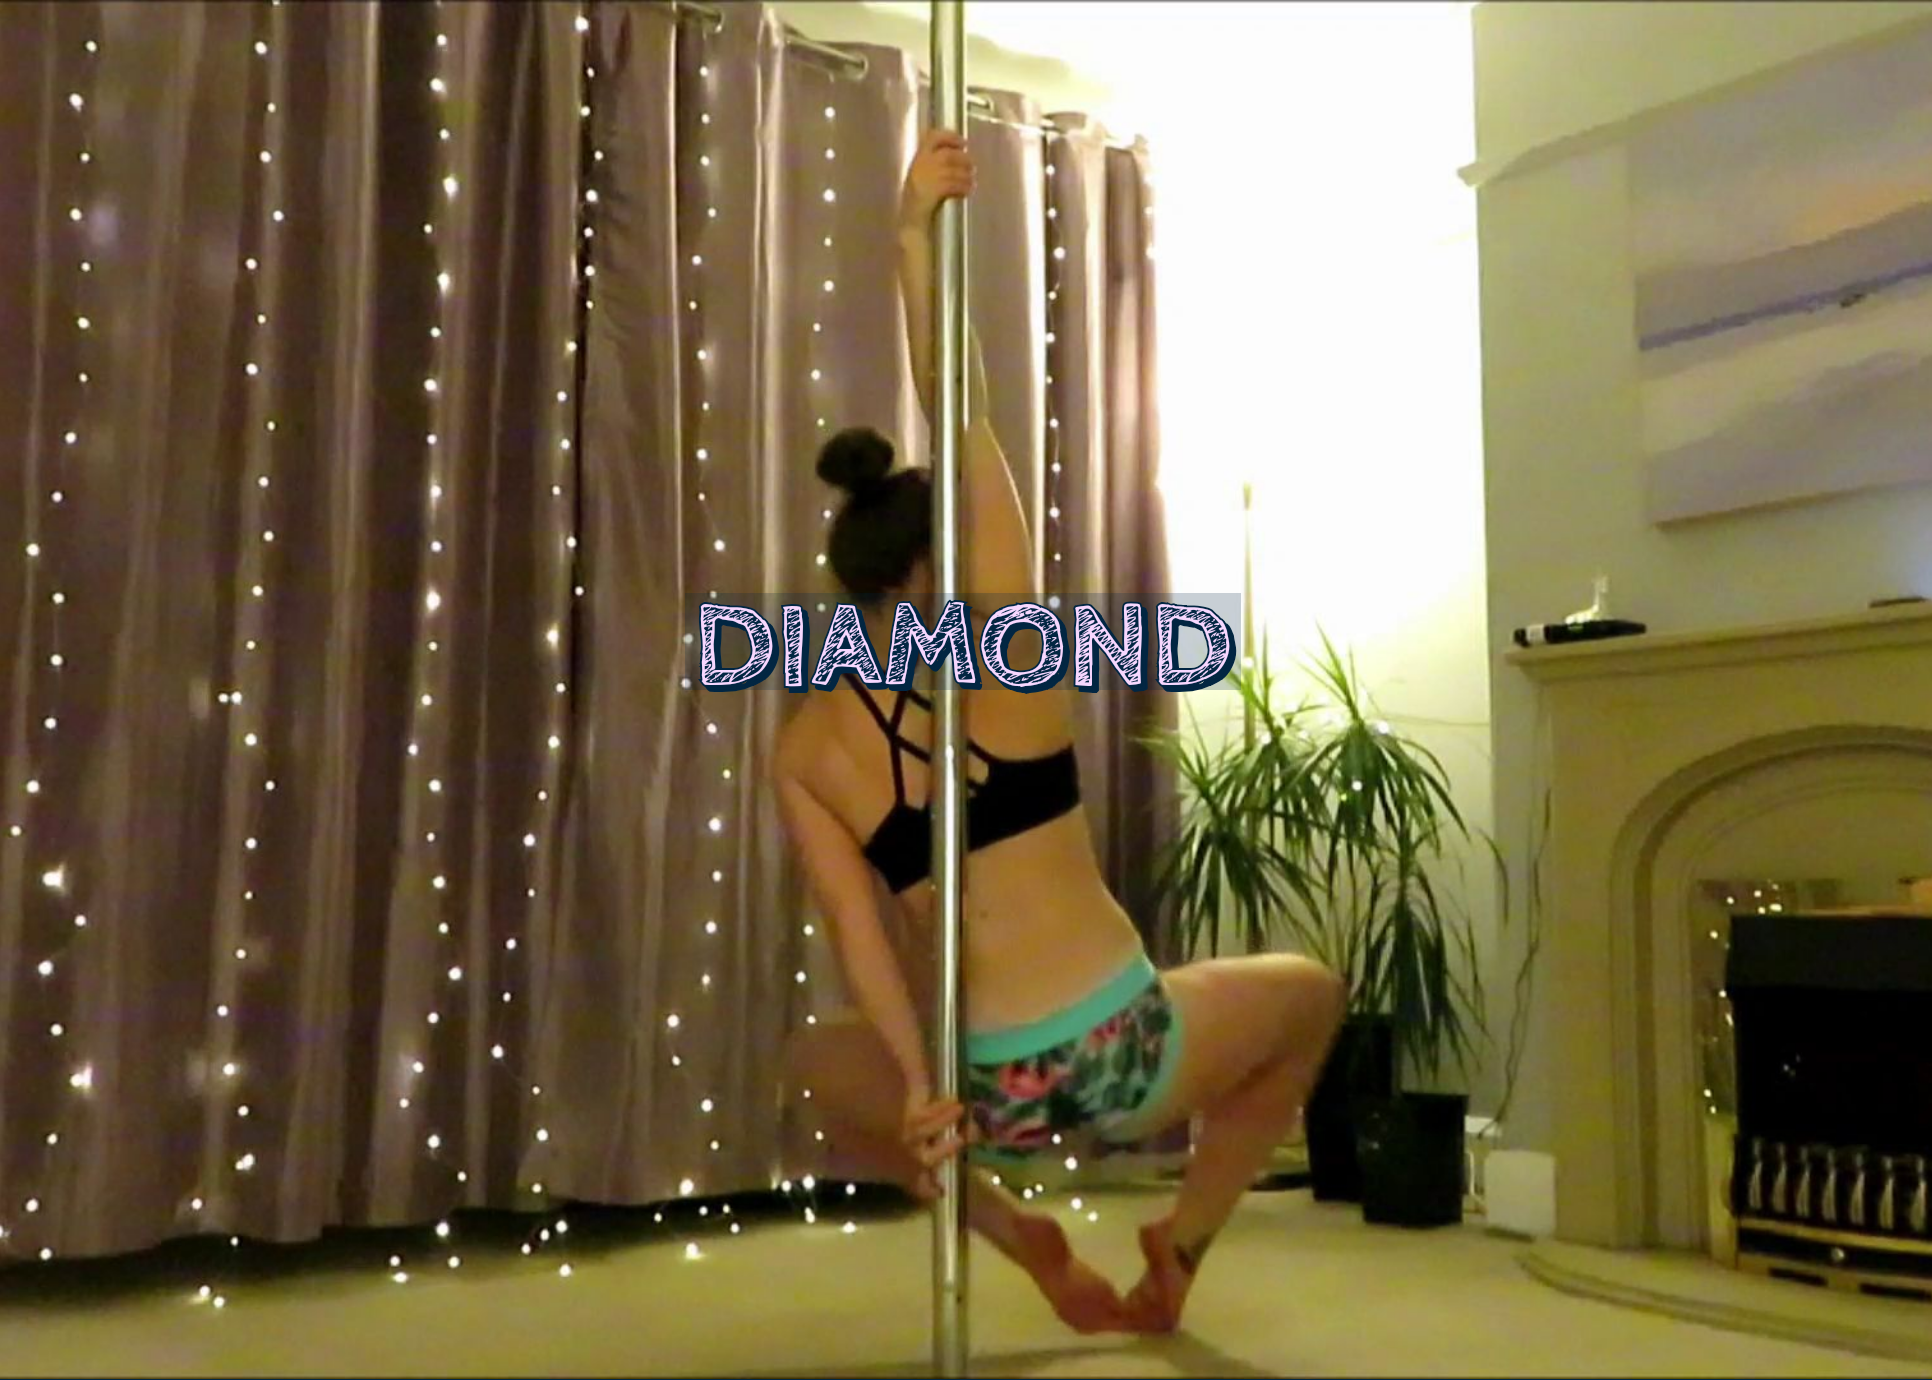 diamond spin pole dance